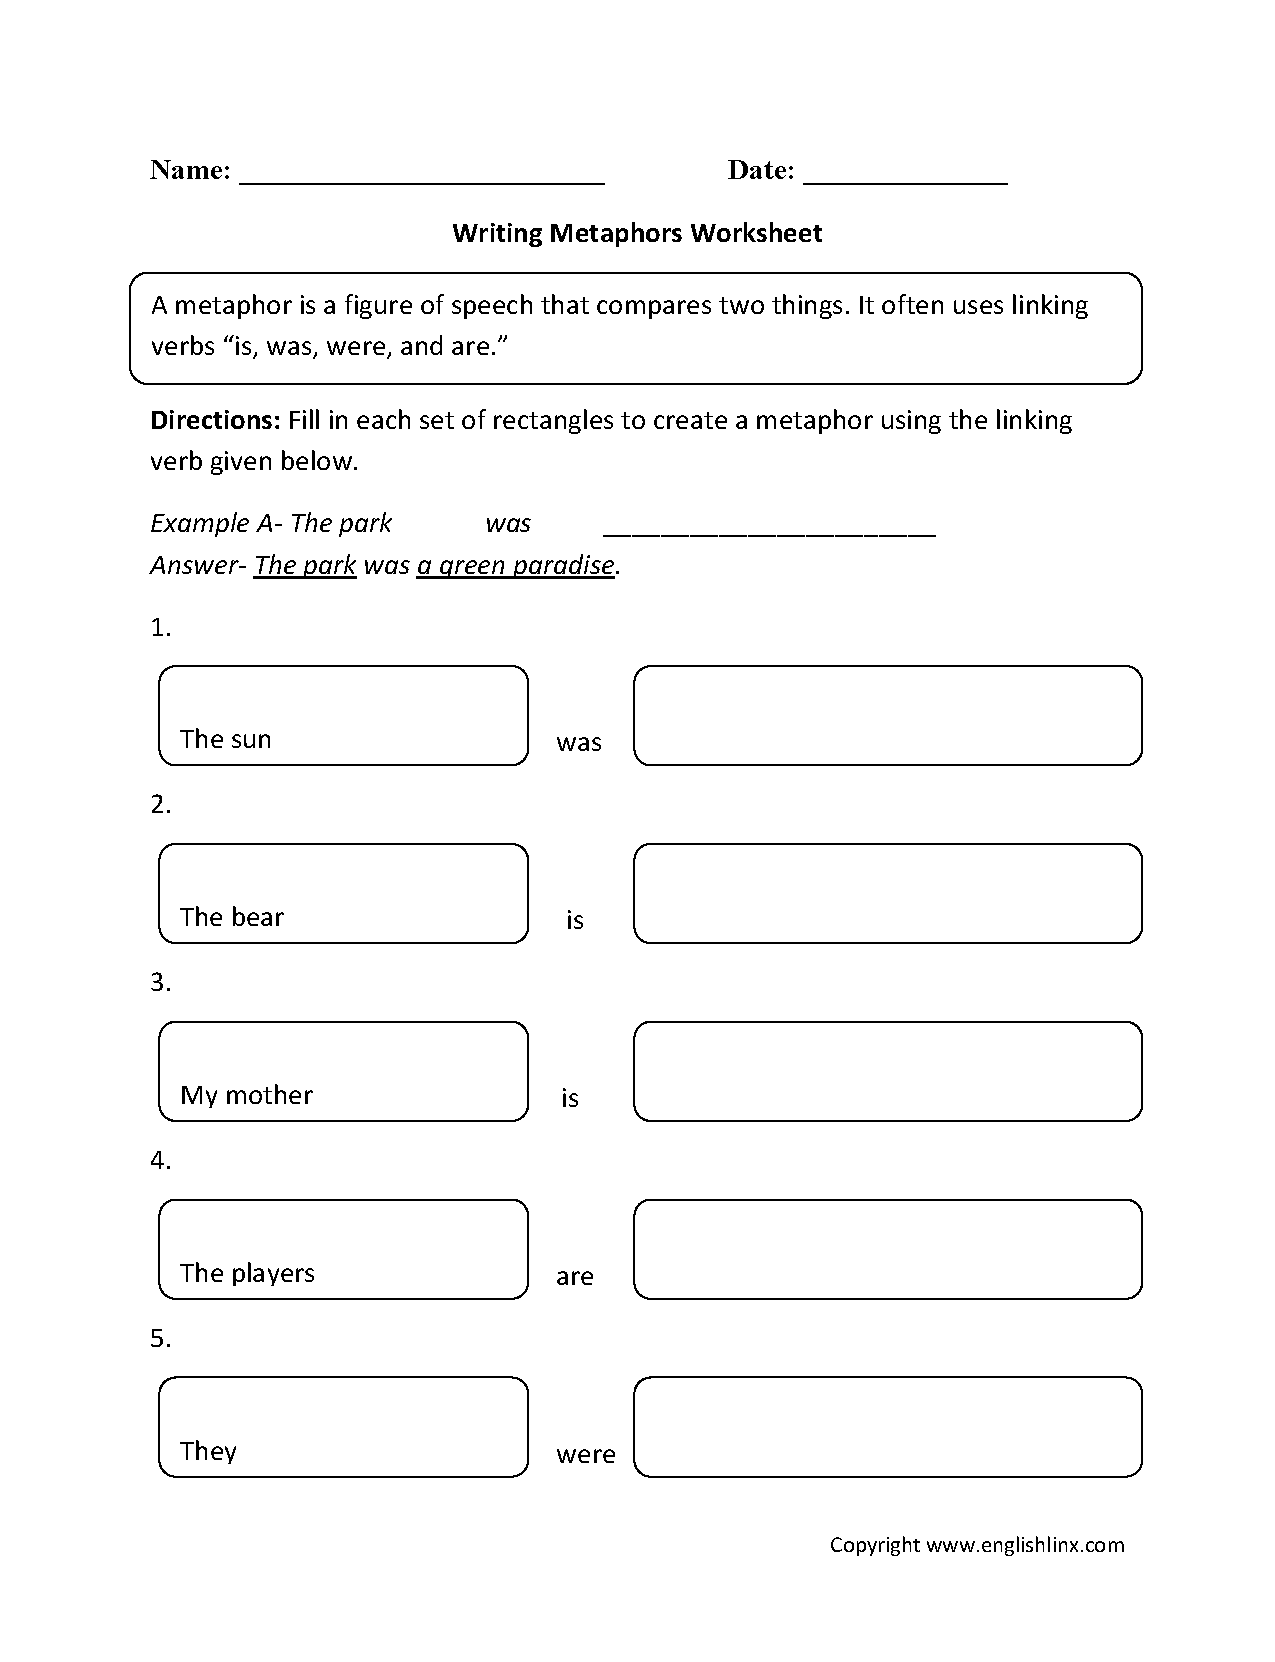 Aldiablosus  Winning Englishlinxcom  Metaphors Worksheets With Heavenly Worksheet With Attractive Grandparents Day Worksheets Also Free Printable Holiday Worksheets In Addition  Multiplication Worksheet And Th Grade Algebra Worksheets Free Printable As Well As Circle Area And Circumference Worksheet Additionally Kindergarten Sight Word Worksheet From Englishlinxcom With Aldiablosus  Heavenly Englishlinxcom  Metaphors Worksheets With Attractive Worksheet And Winning Grandparents Day Worksheets Also Free Printable Holiday Worksheets In Addition  Multiplication Worksheet From Englishlinxcom